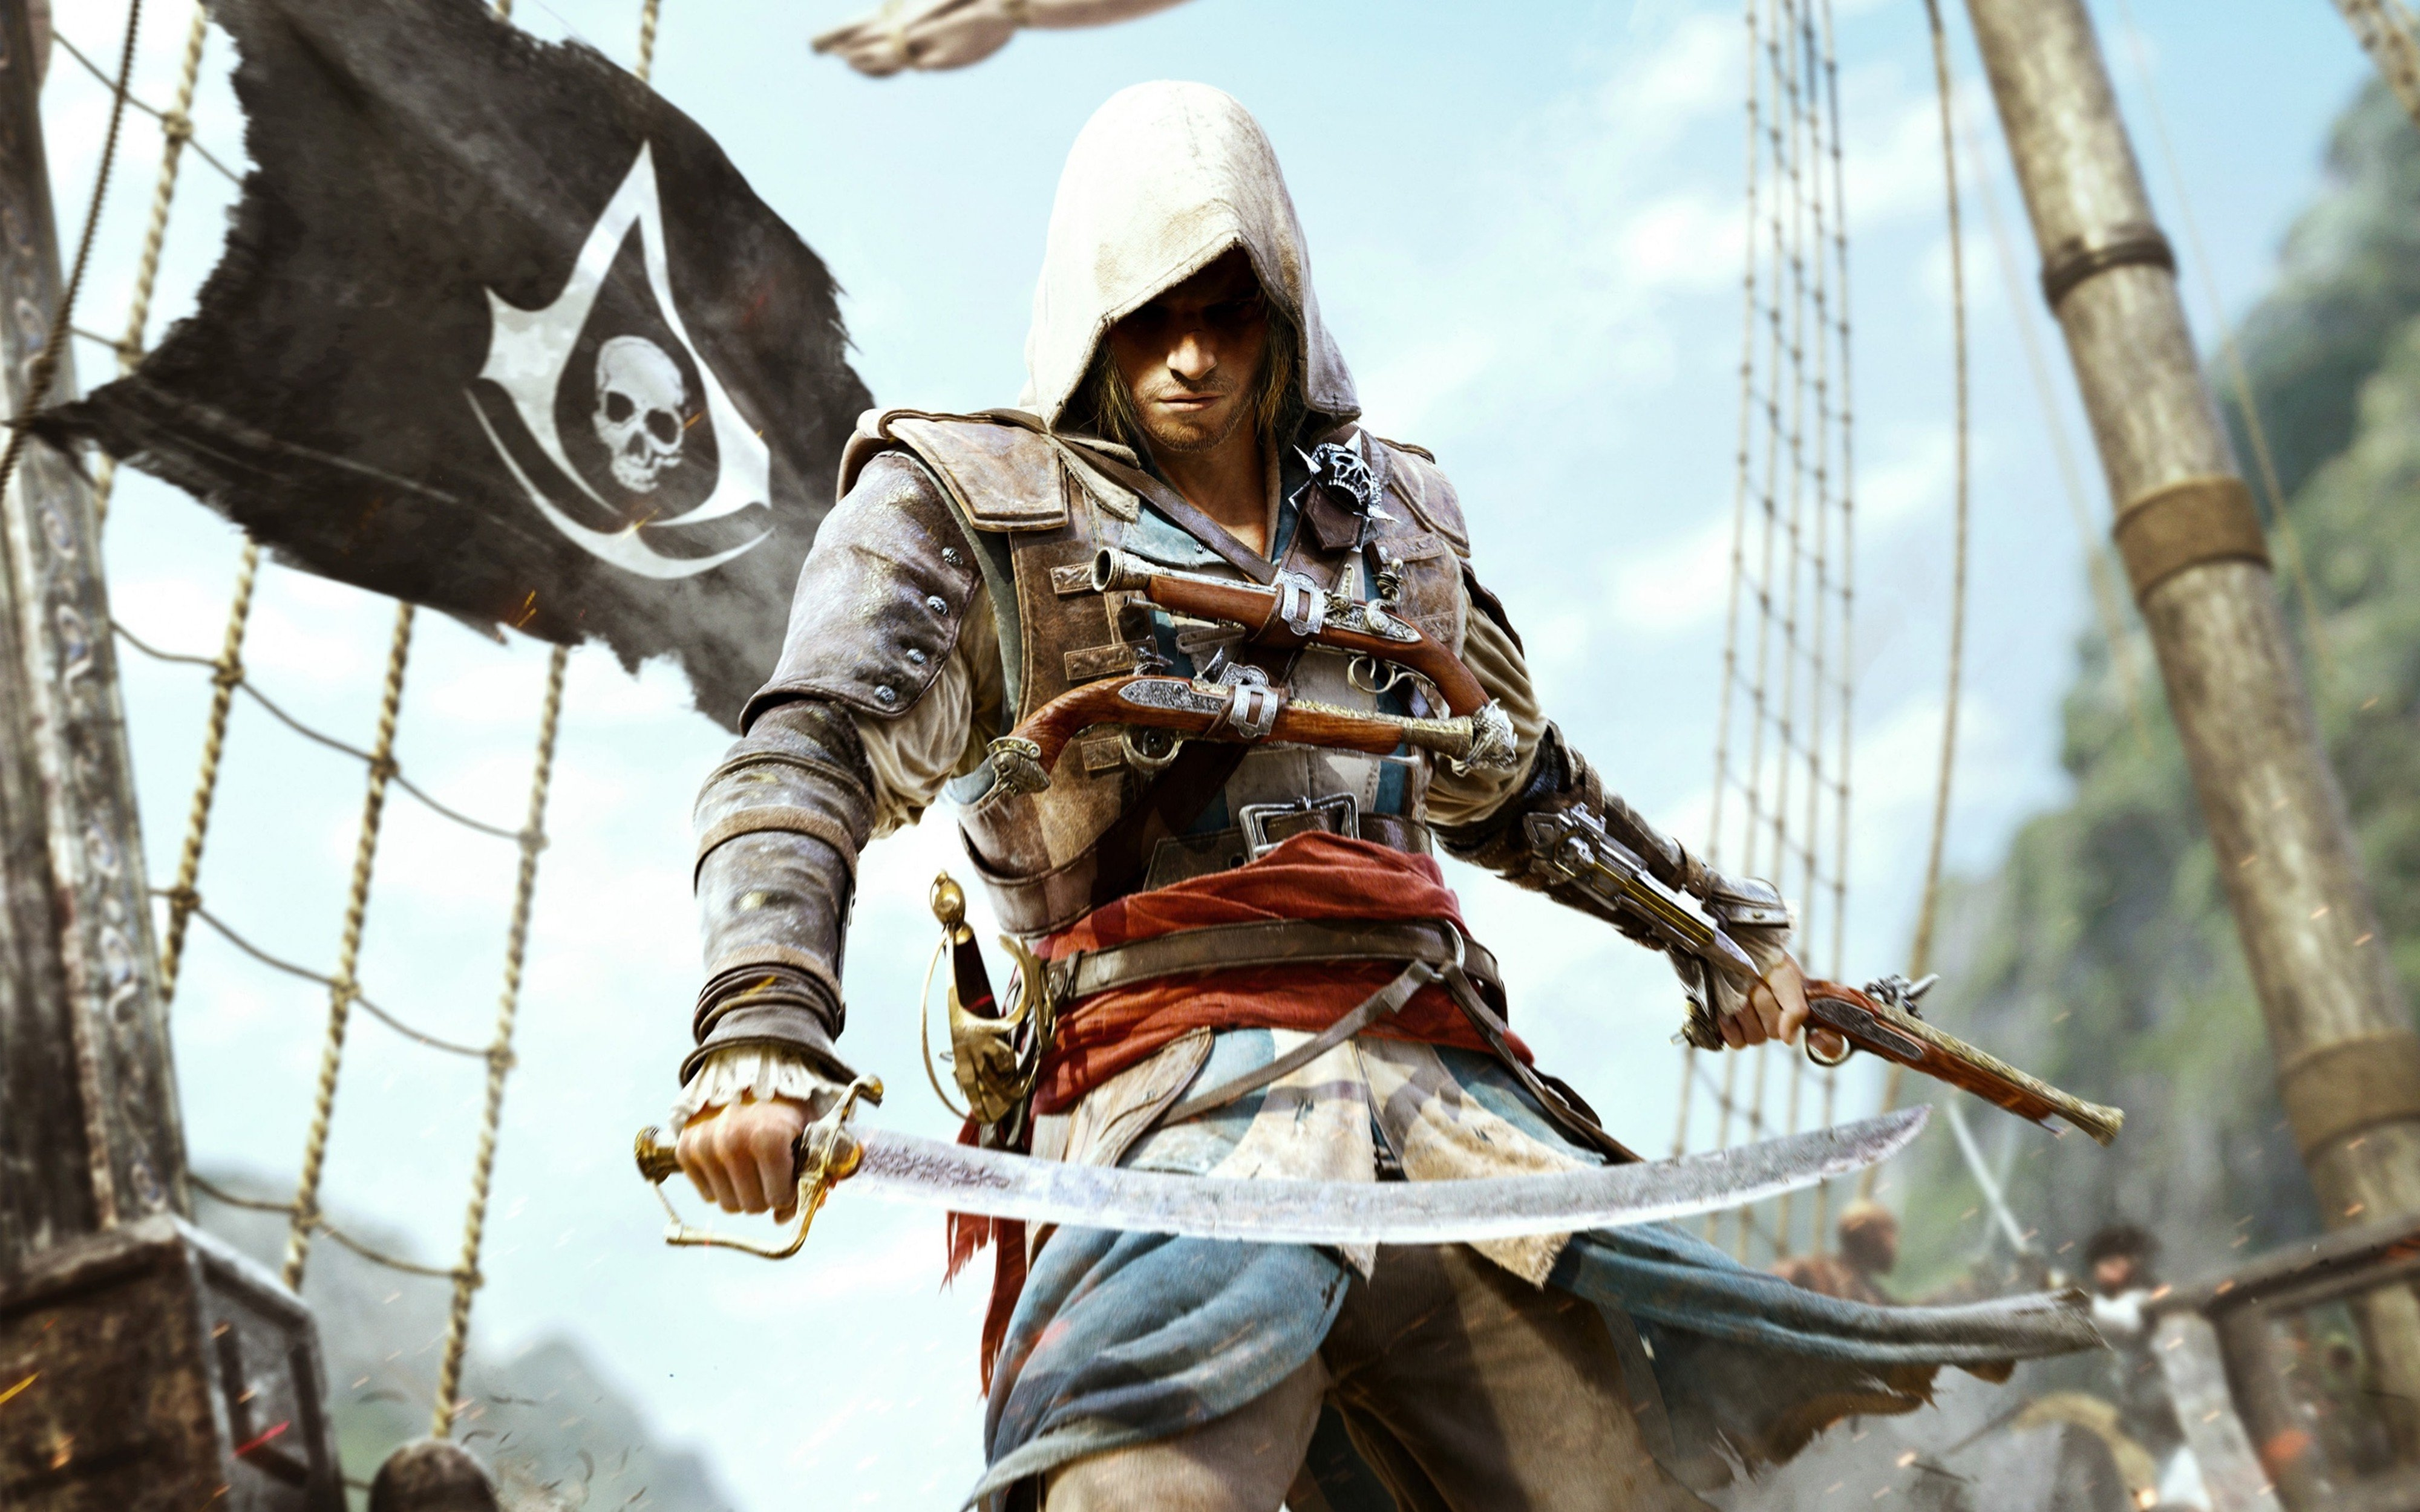 Assassins Creed 3d Wallpaper Assassins Creed 4 With Sabre Wallpapers Hd Desktop And